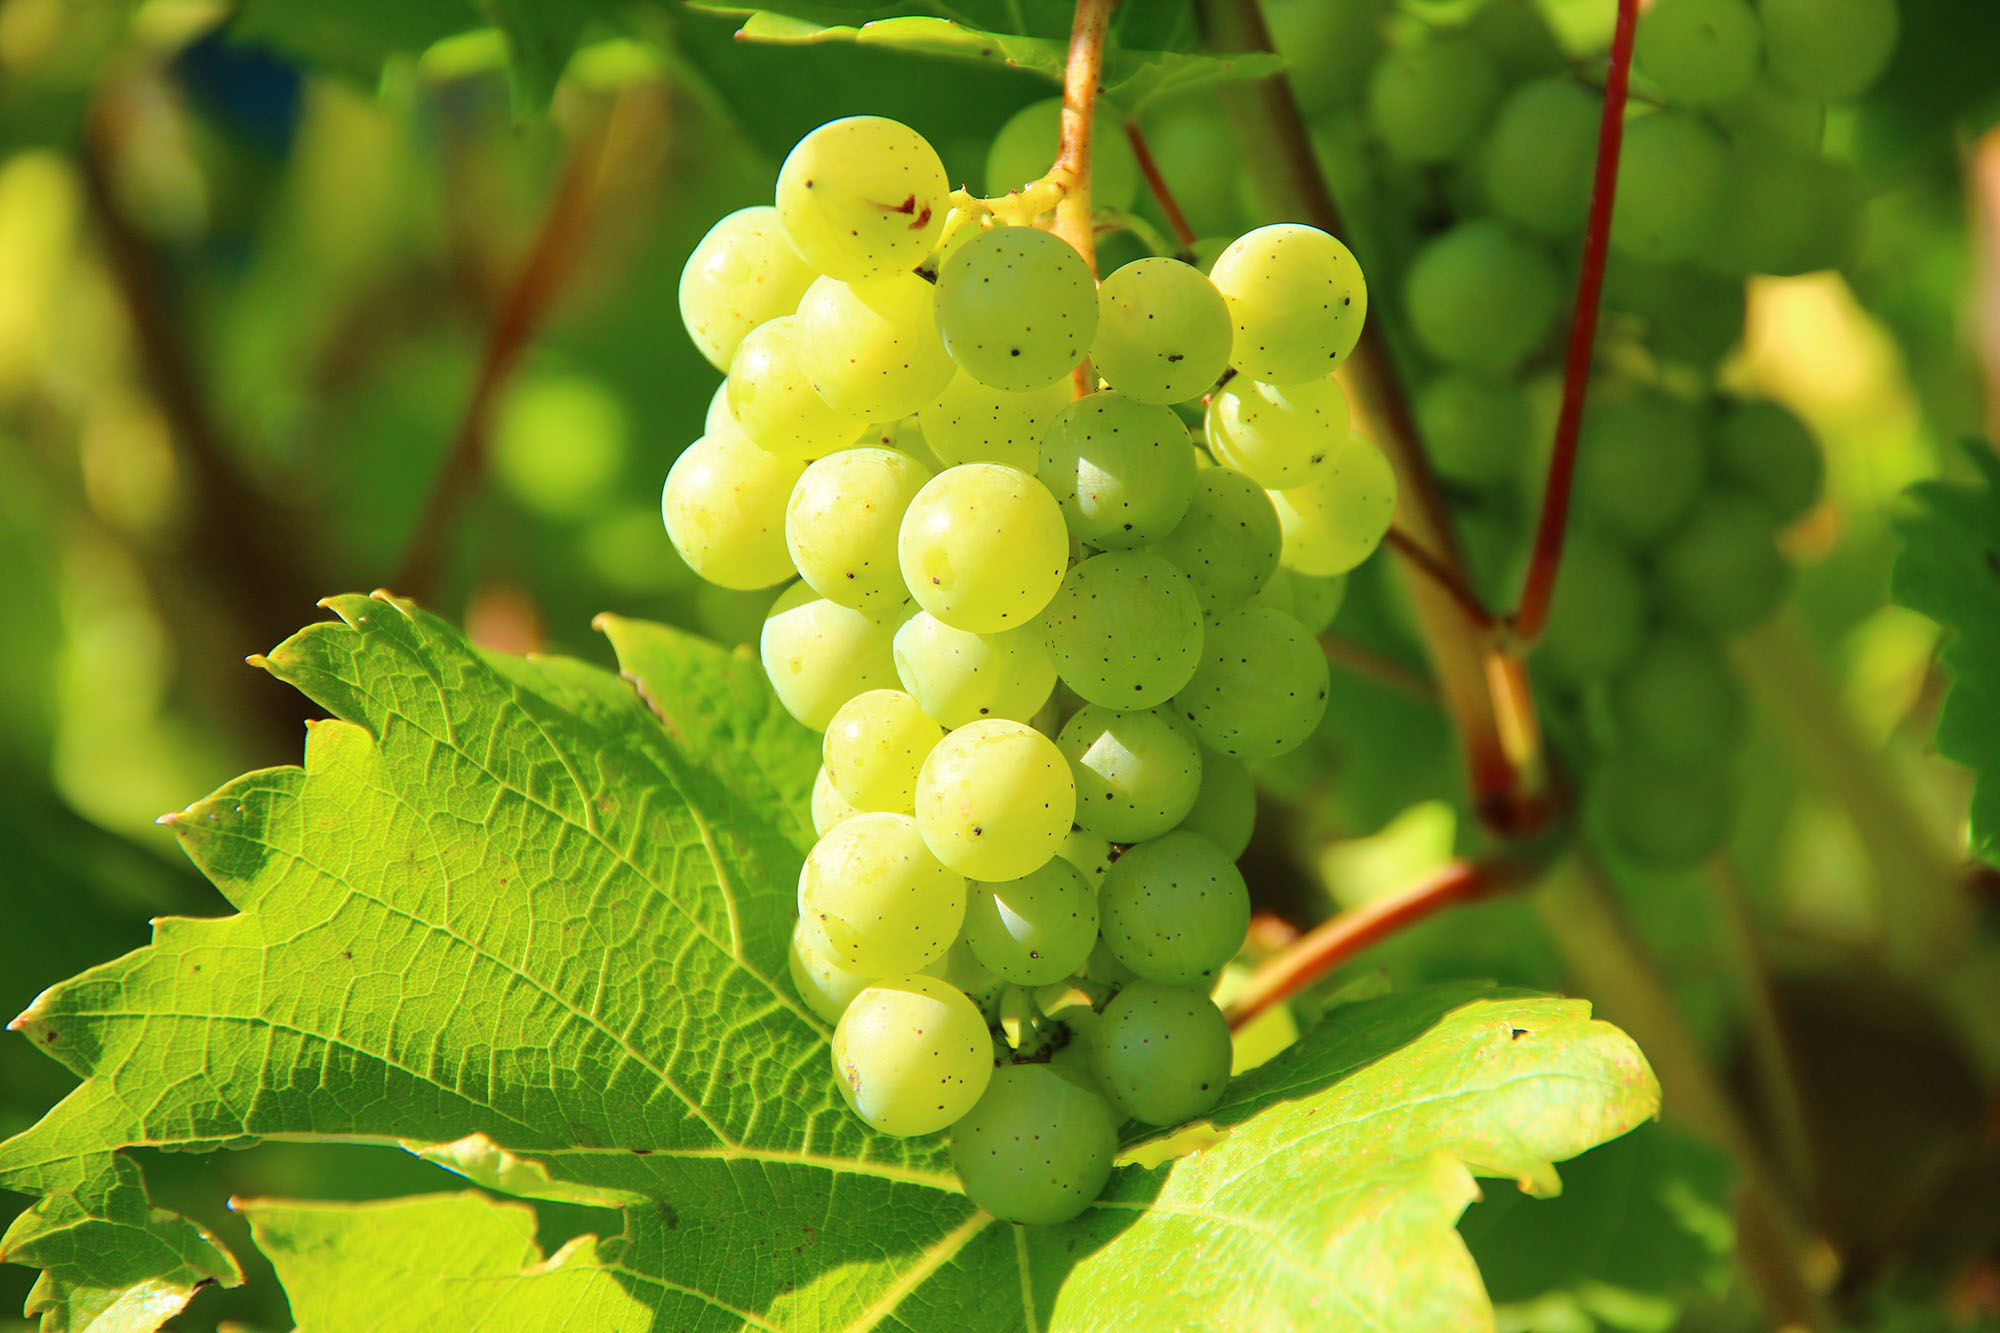 A bunch of white grapes on a vine